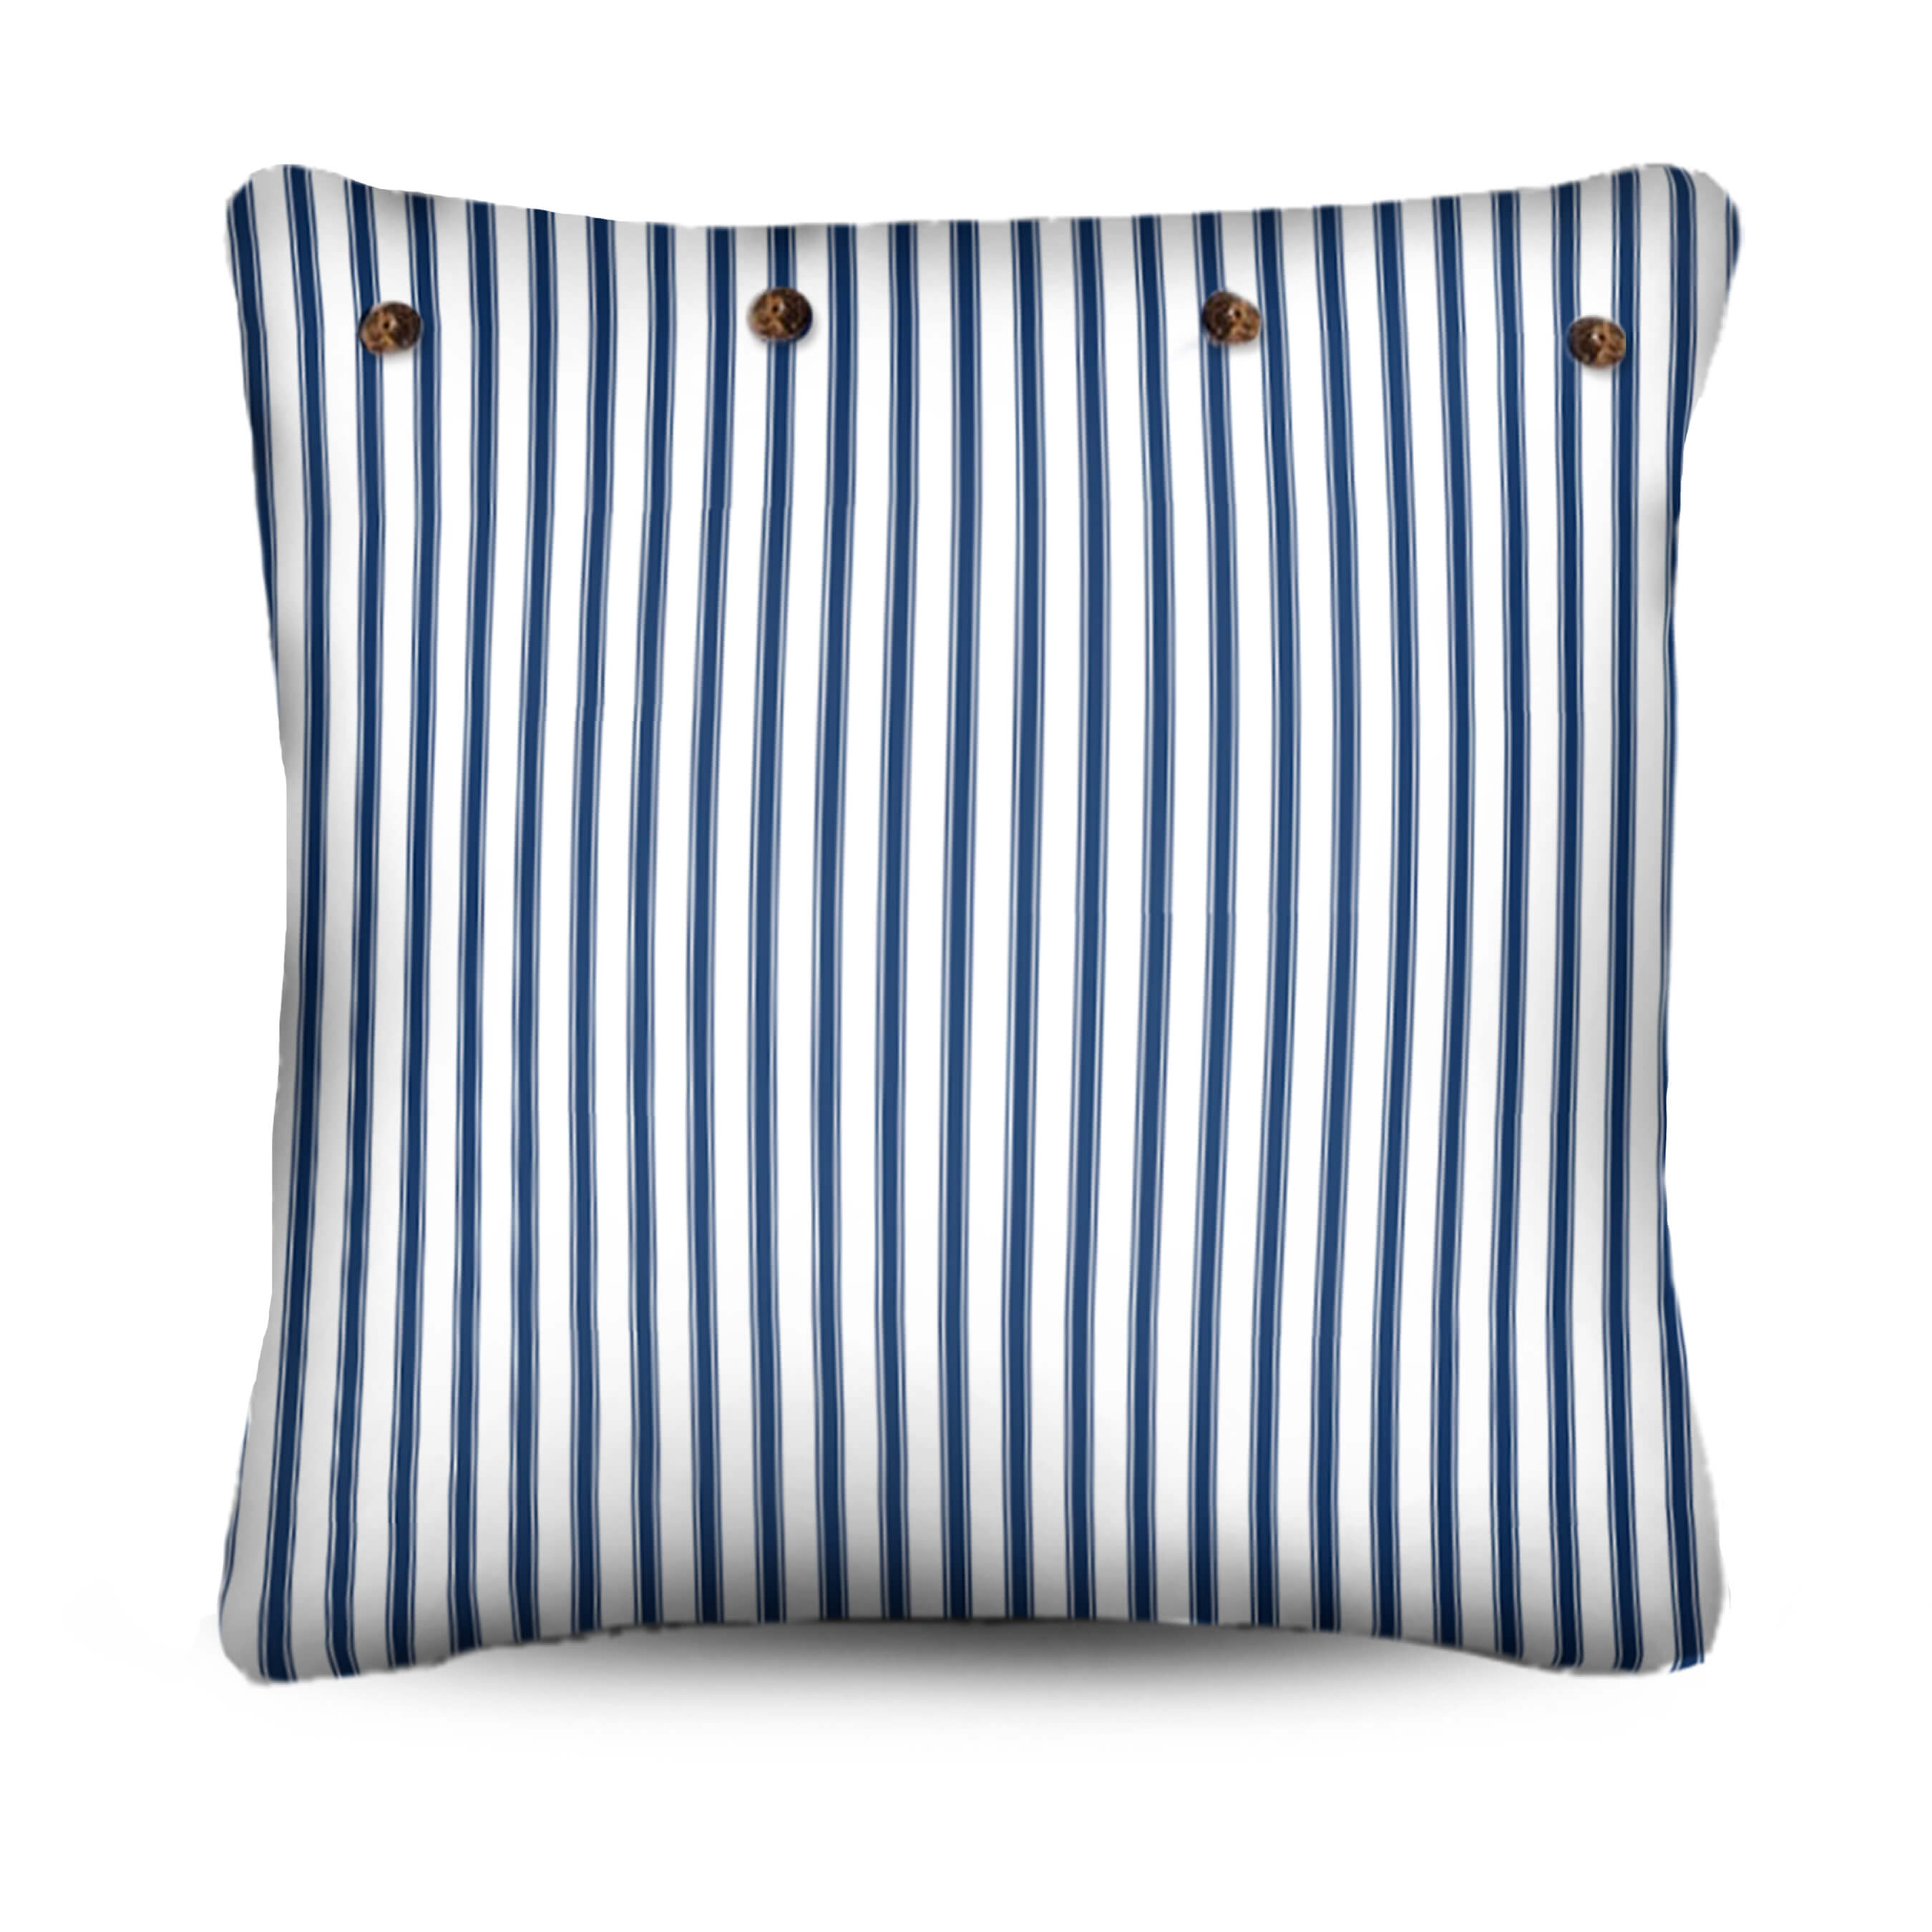 stuart membery pillow, ticking pillow cushion, blue and white stripe pillow